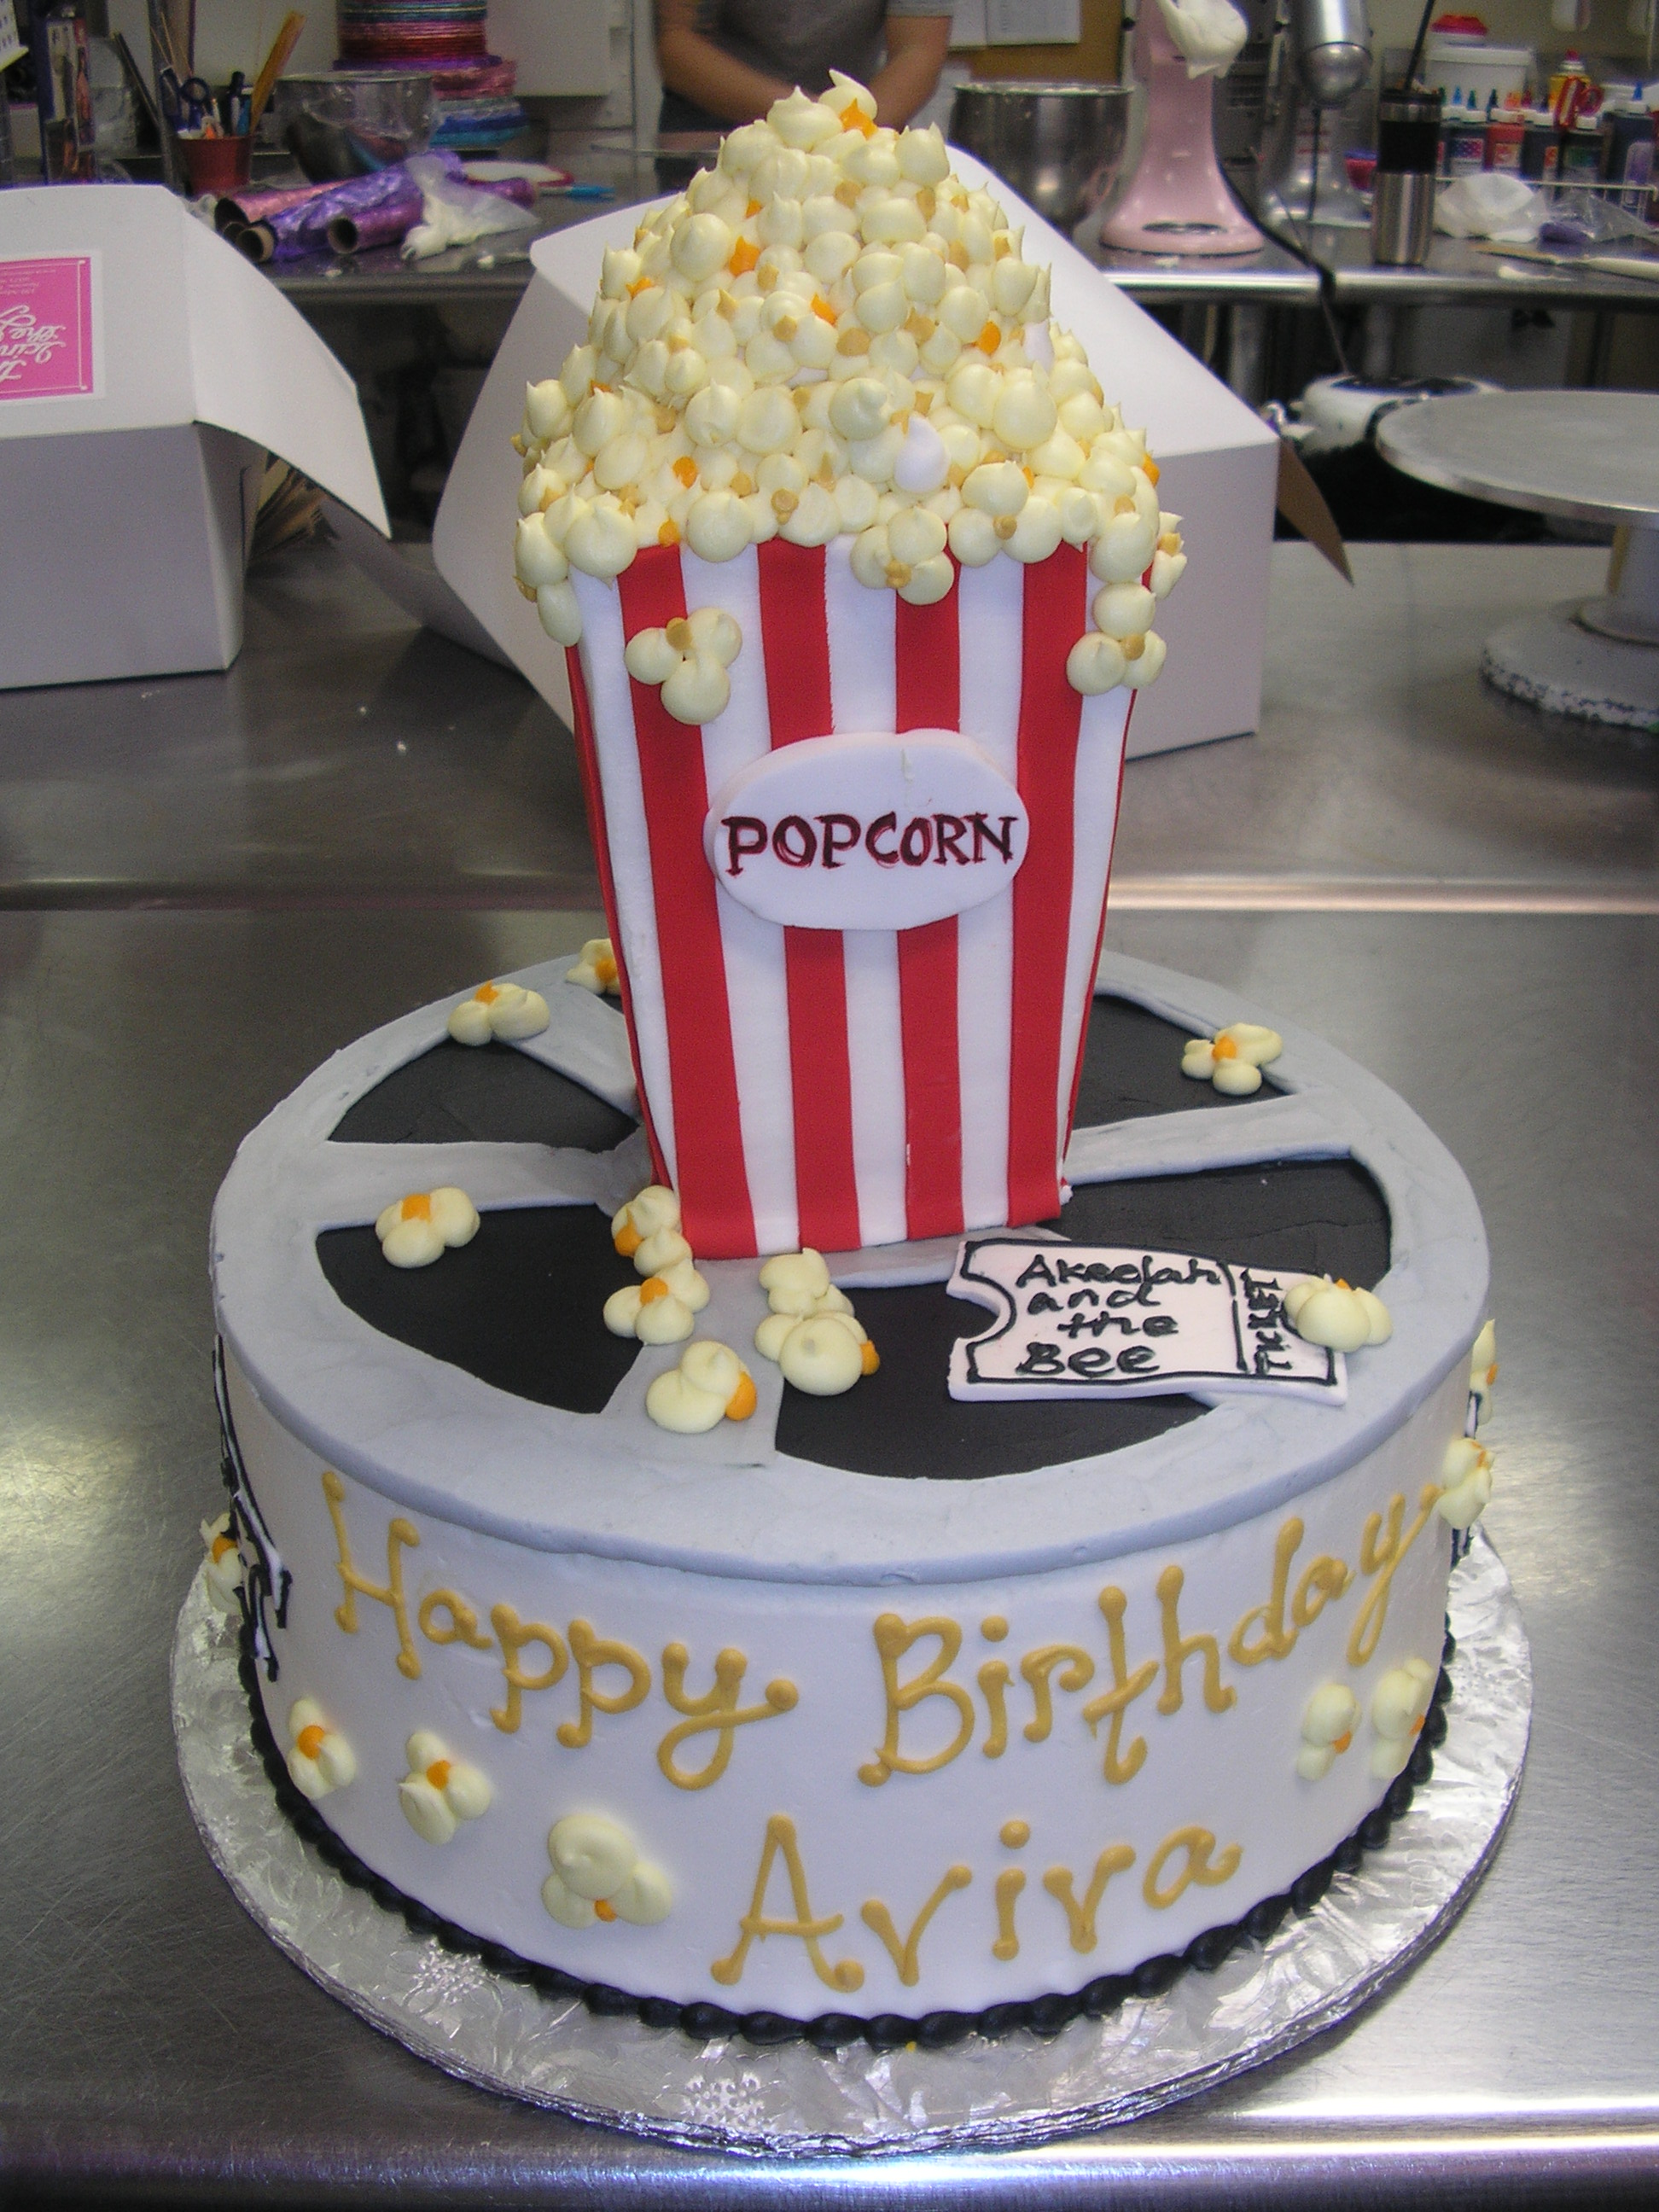 3D popcorn and movie reel on a cake